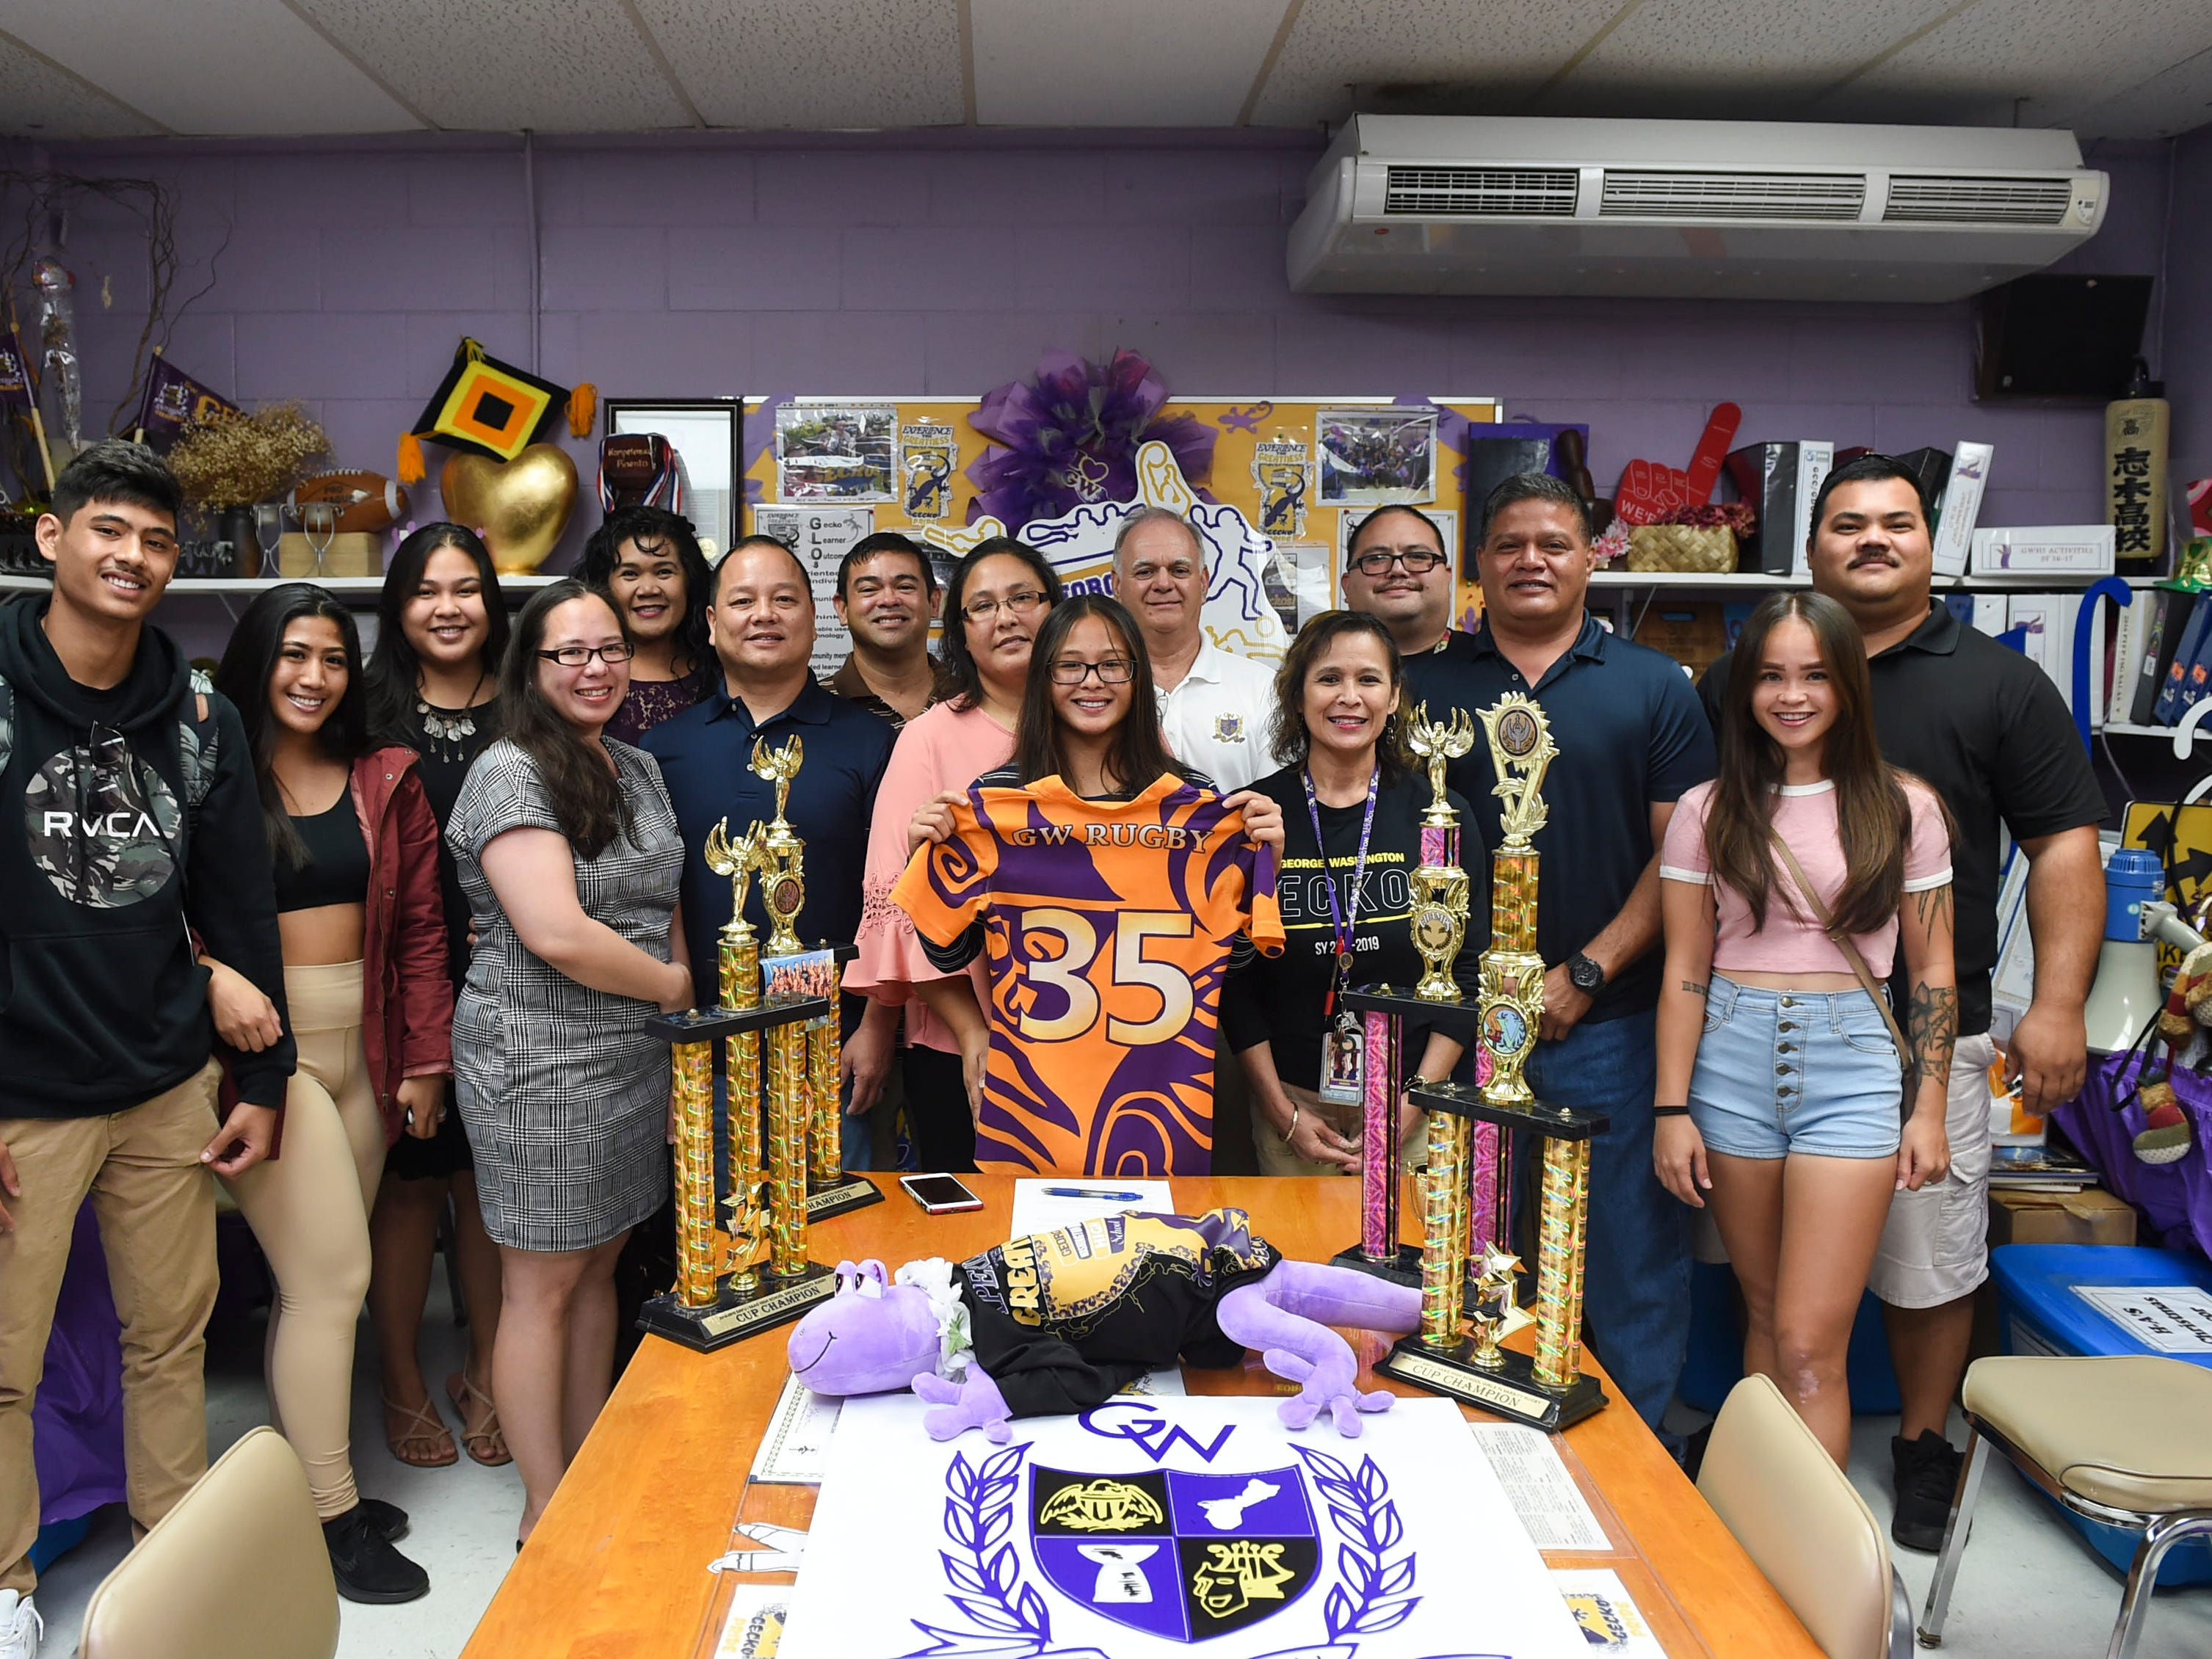 Family and George Washington High School staff members gather for the college signing of their girls' rugby star athlete, Jalana Garcia, 18, at the GWHS main office, Jan. 11, 2019. Garcia, a four-time All-Island athlete and rugby champion, has signed a letter of intent to play rugby for Mount St. Mary's University in Emmitsburg, Maryland.